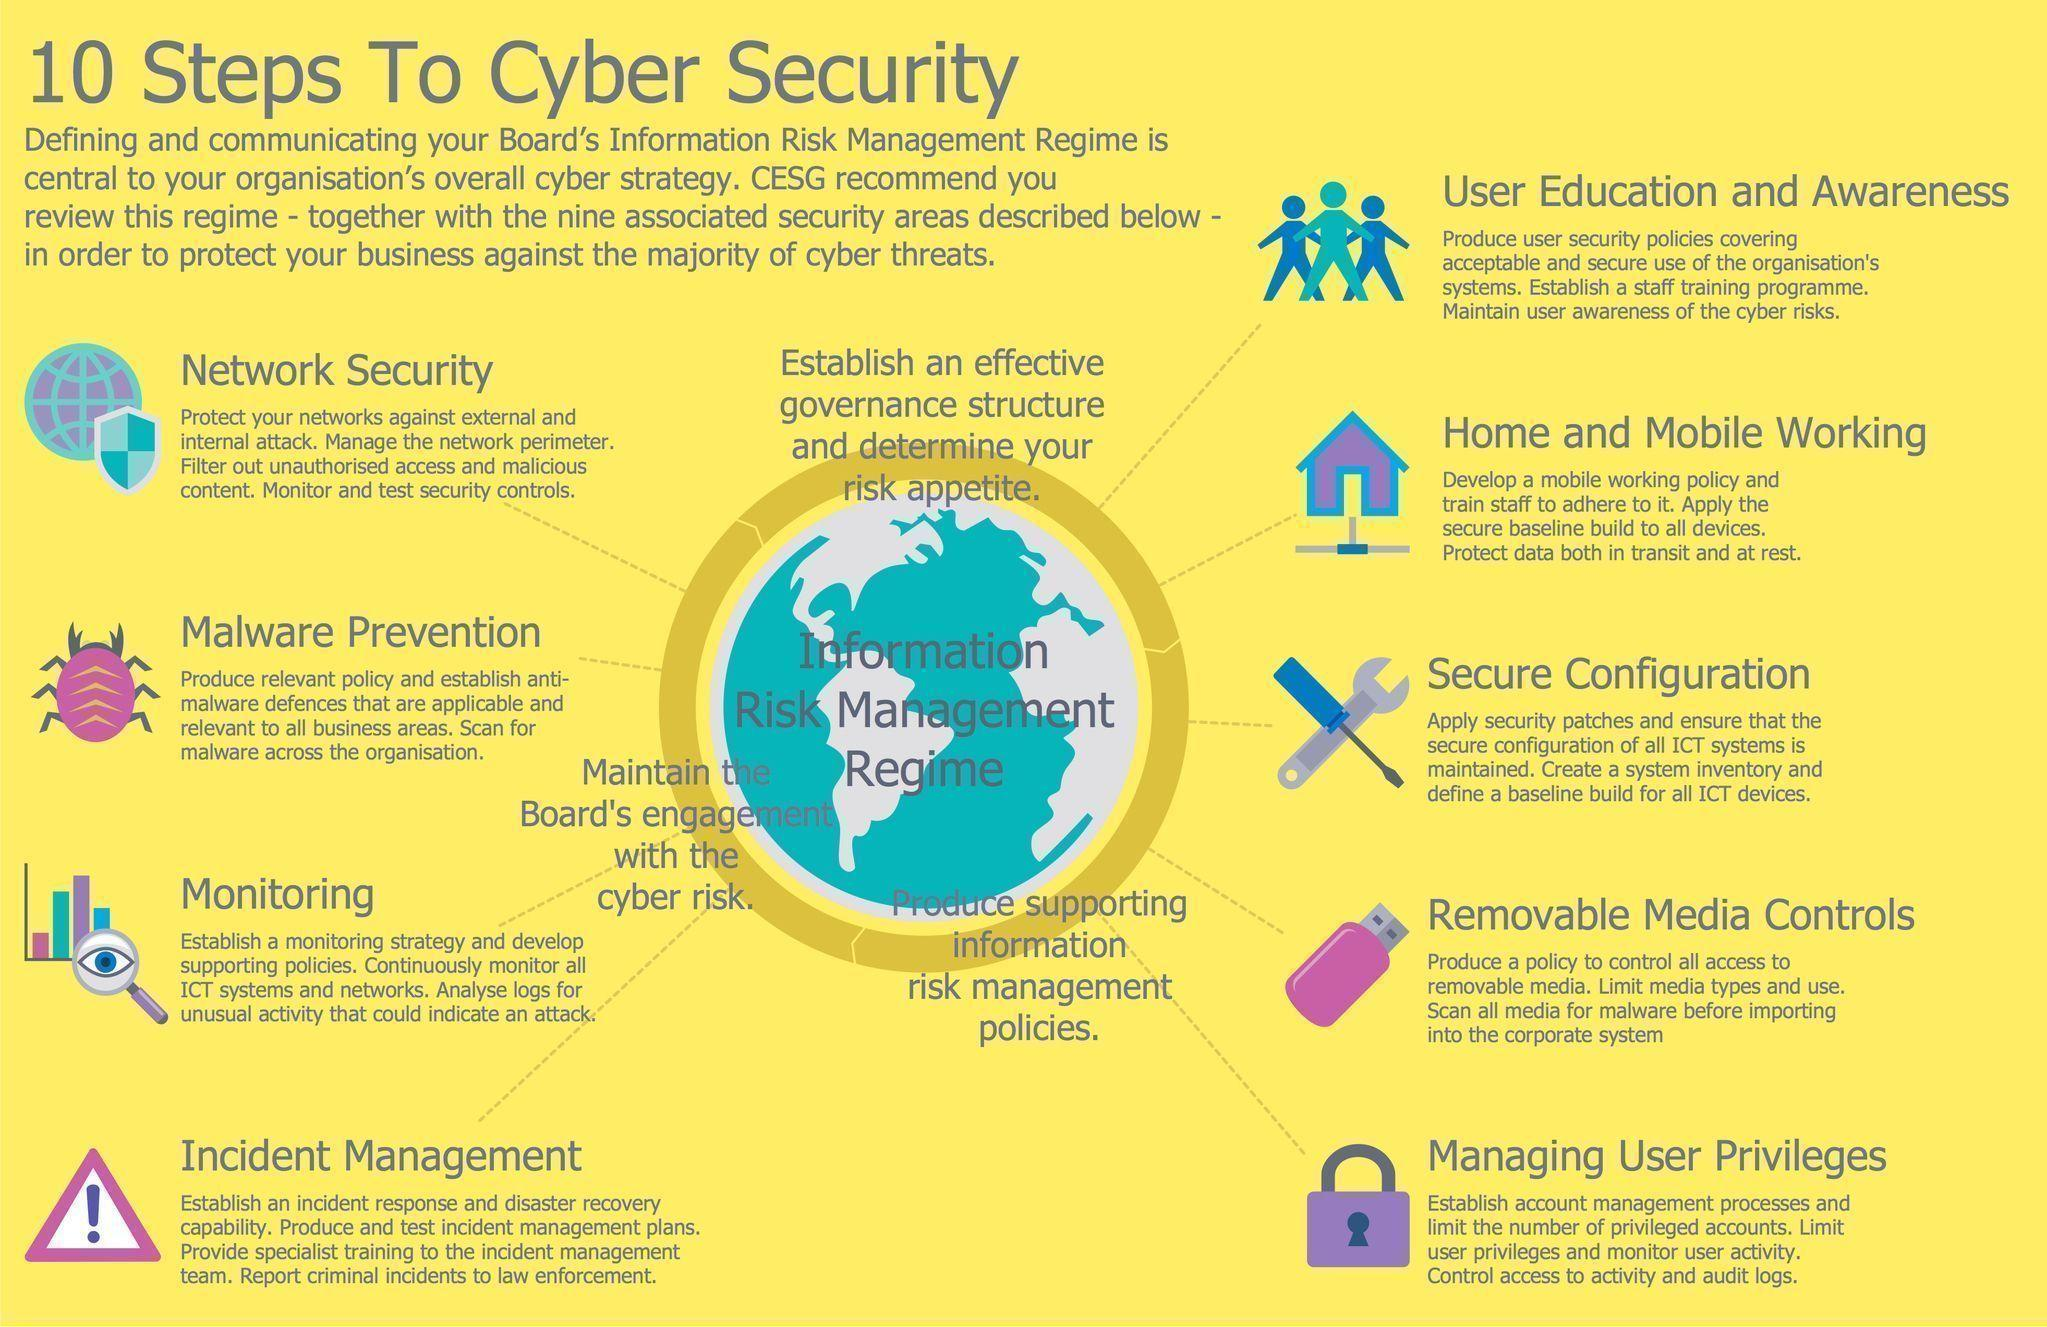 10 Steps To Cyber Security Cybersecurity Observatory